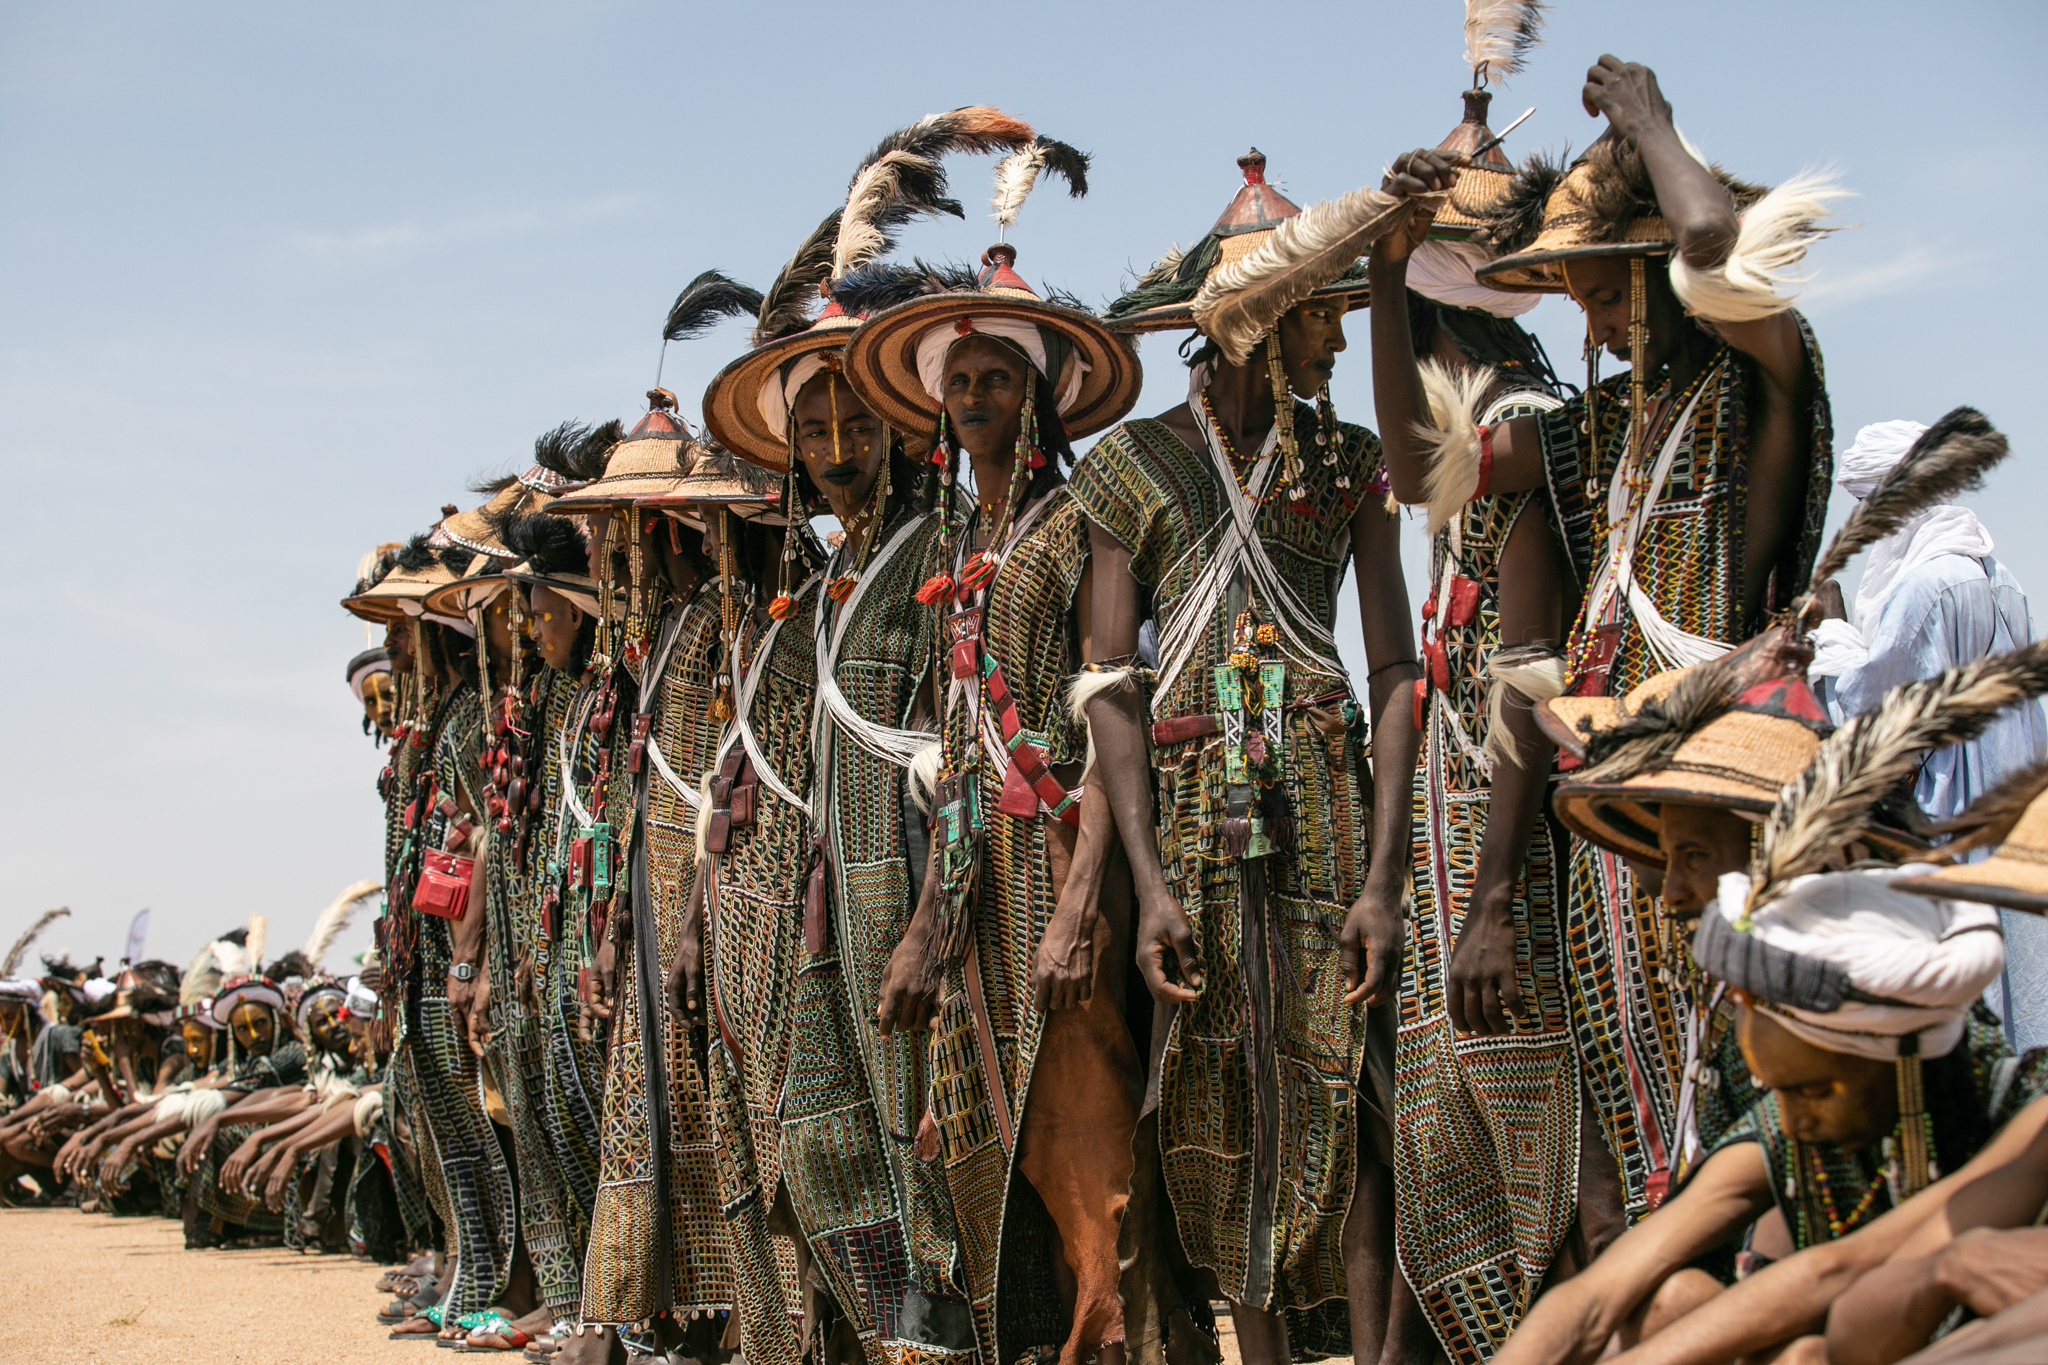 Young Wodaabe prepare themselves with meticulous makeup and feathers in hopes of finding a mate.